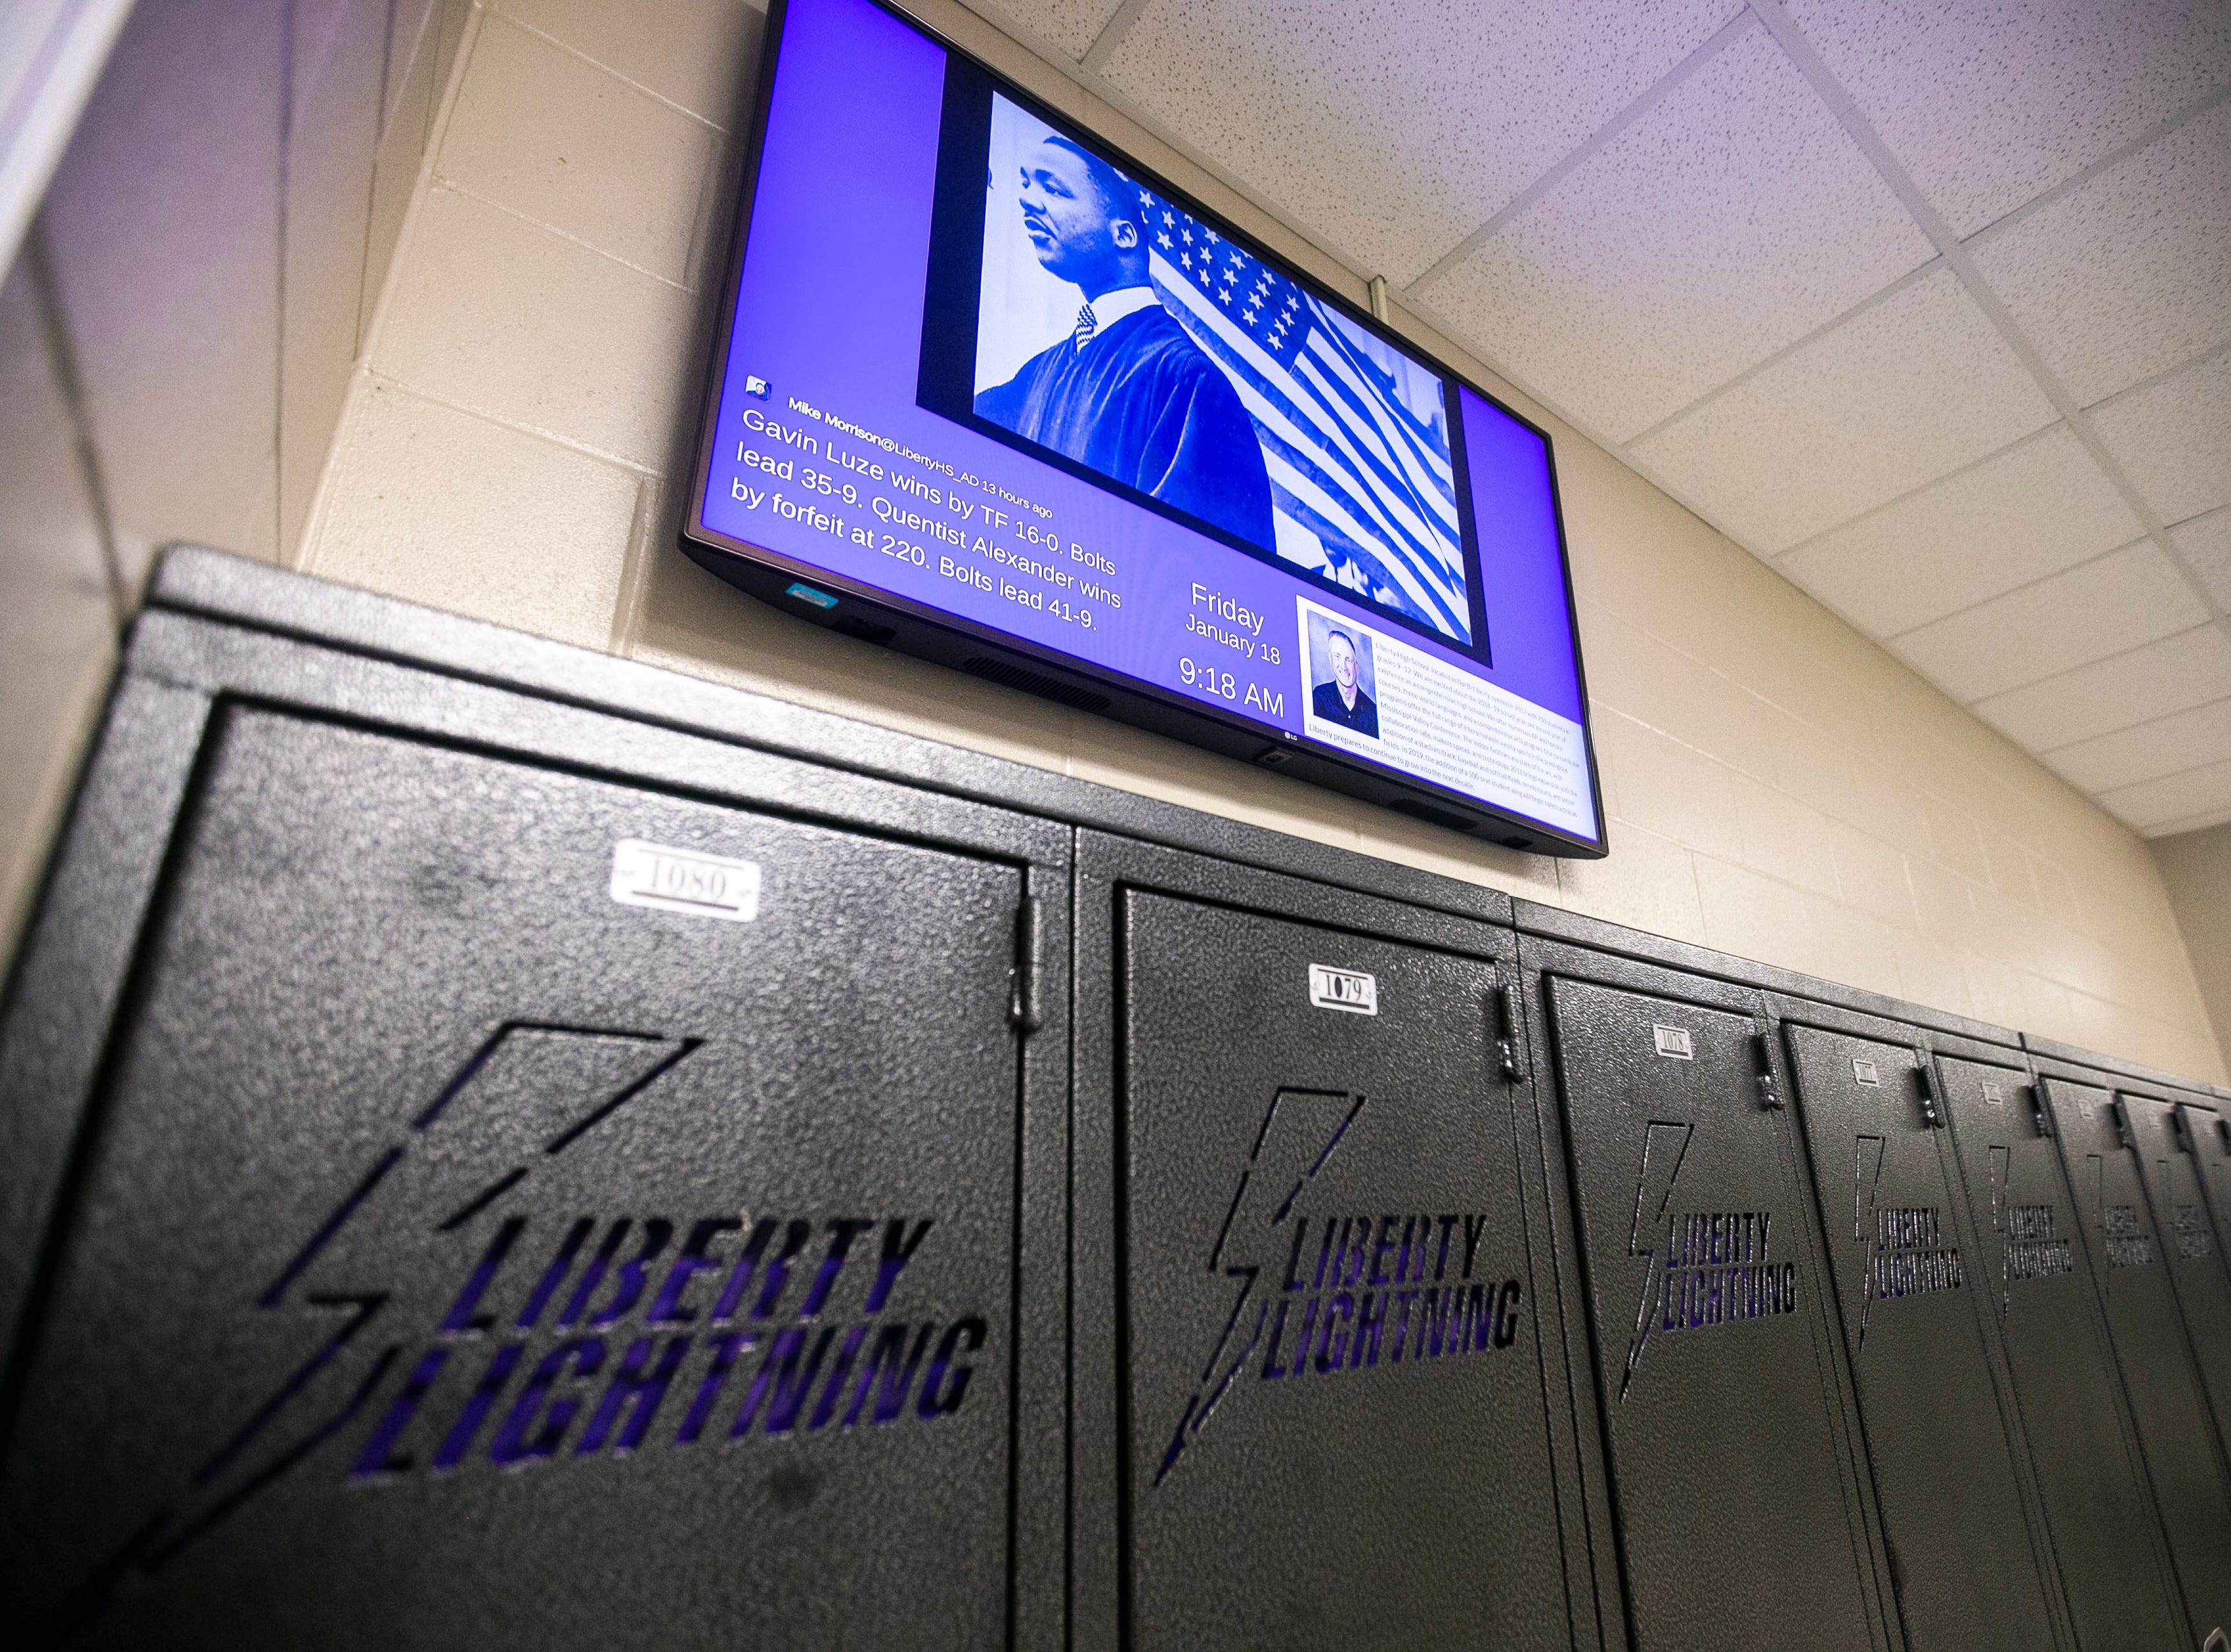 A TV screen hanging above lockers in a hallway displays updates from the school along with a photo of Martin Luther King Jr. during an MLK day event on Friday, Jan. 18, 2019, at Liberty High School in North Liberty, Iowa.